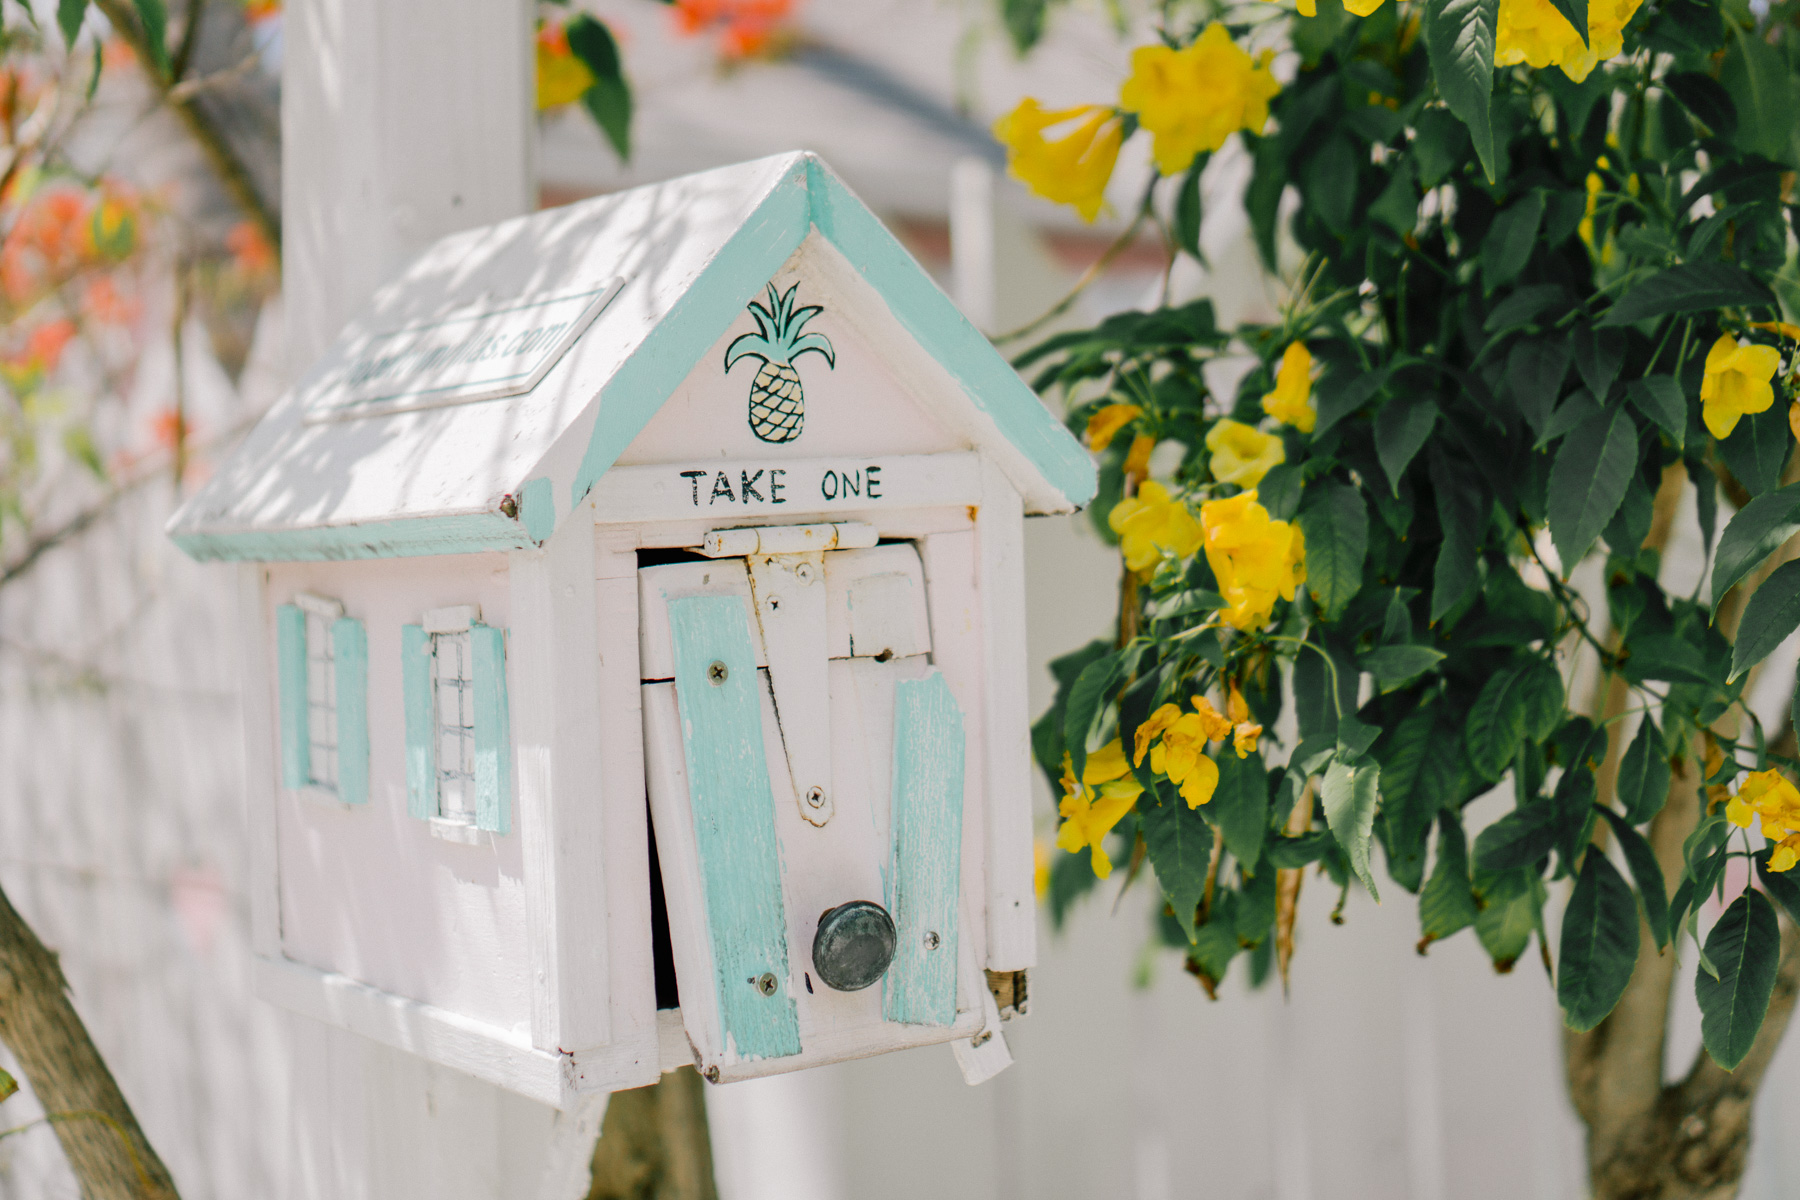 Take one mail in Hope Town Harbor